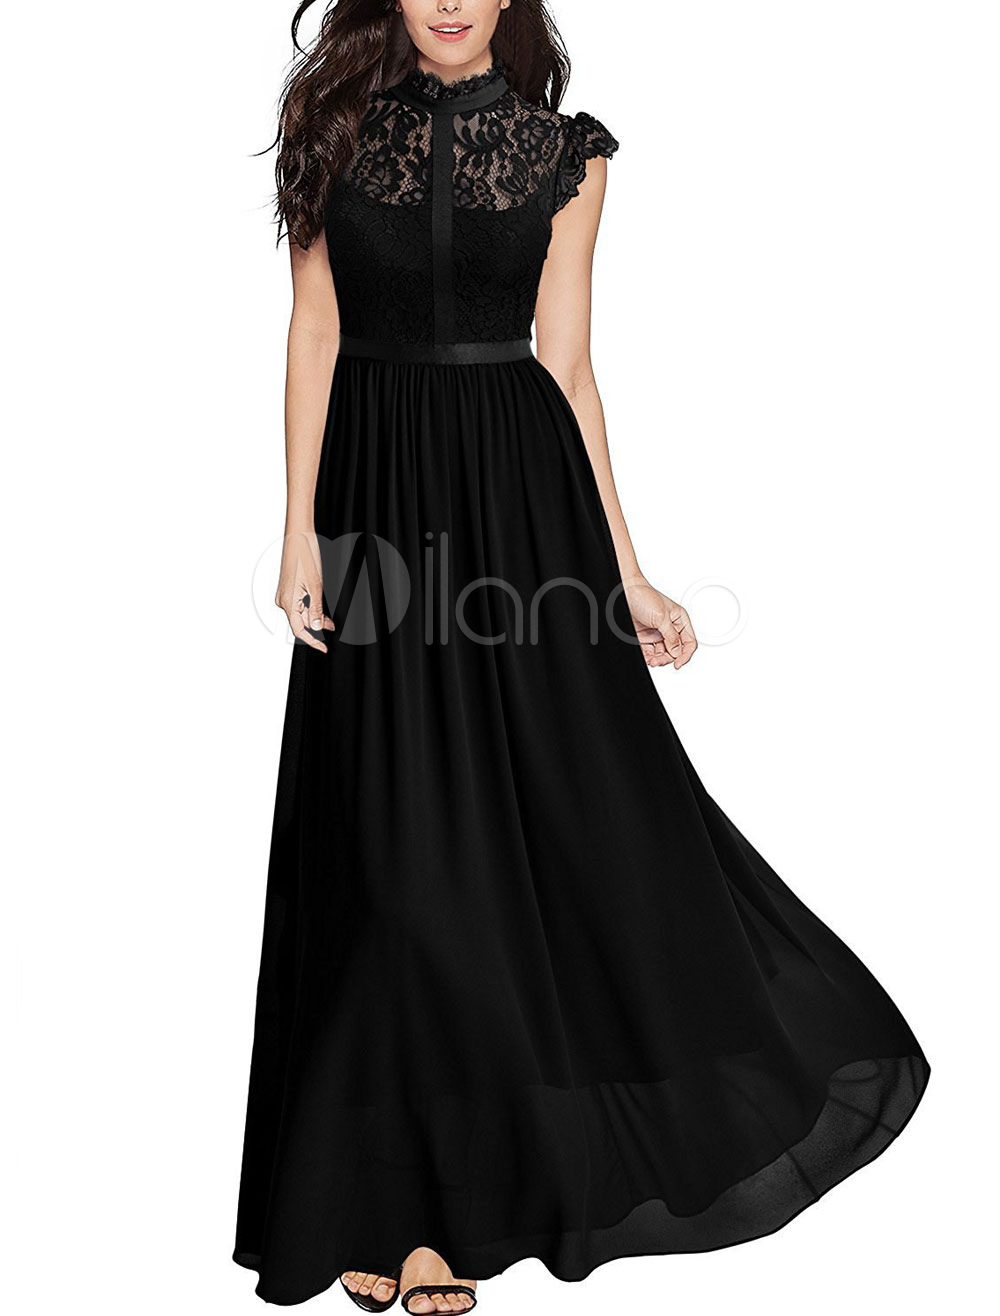 Black Maxi Dresses Lace Round Neck Cap Sleeve Chiffon Backless Party Dress For Women